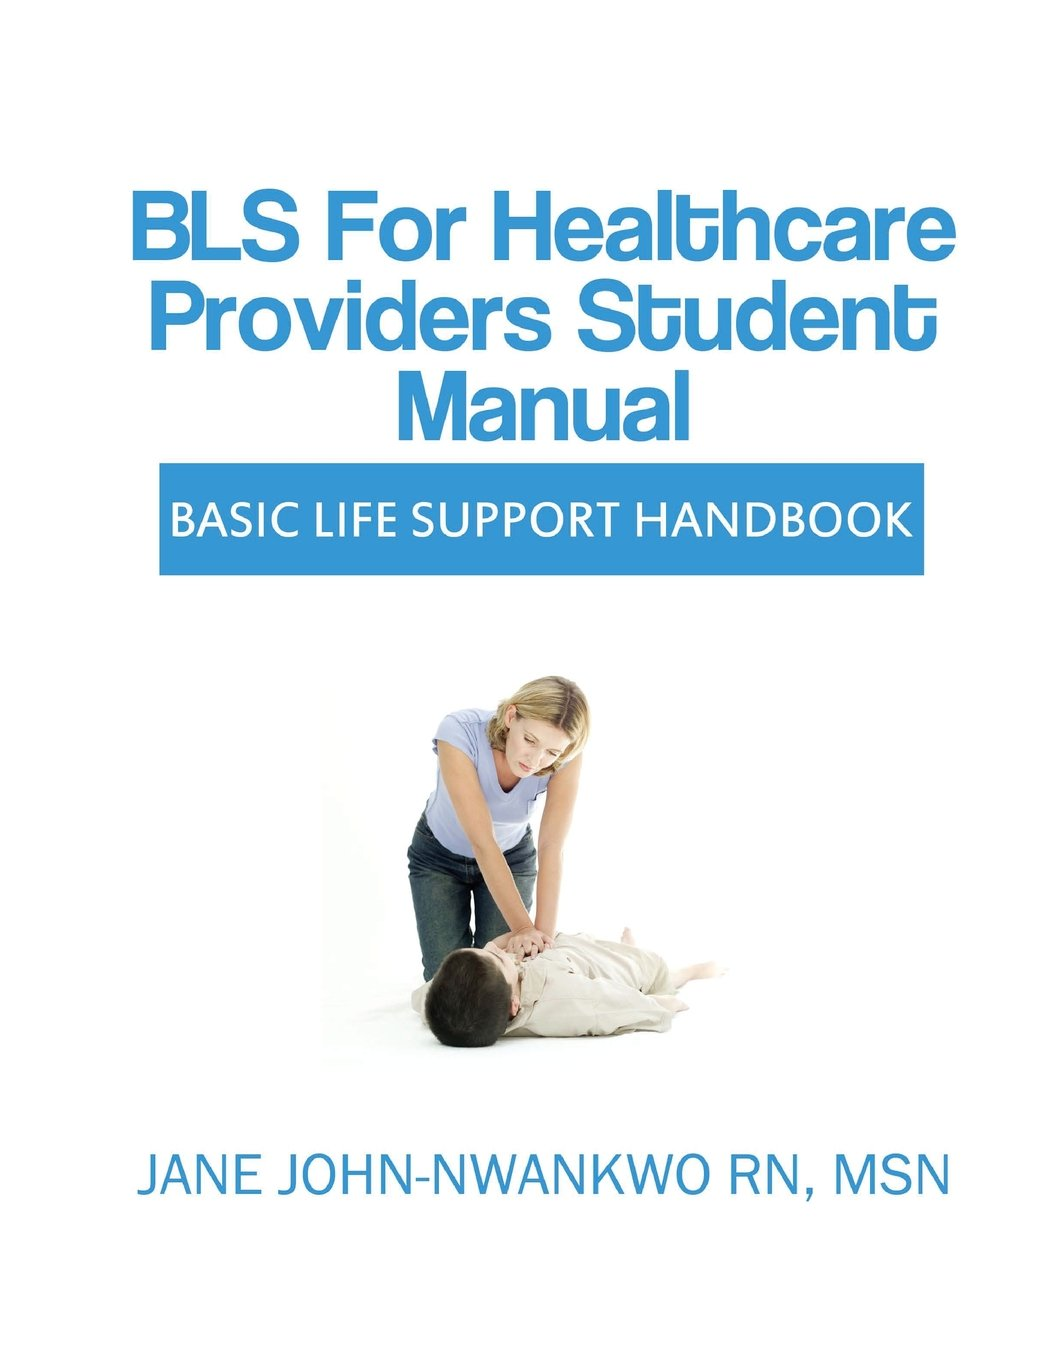 Bls for healthcare providers student manual basic life support bls for healthcare providers student manual basic life support handbook jane john nwankwo 9781497343122 amazon books 1betcityfo Gallery